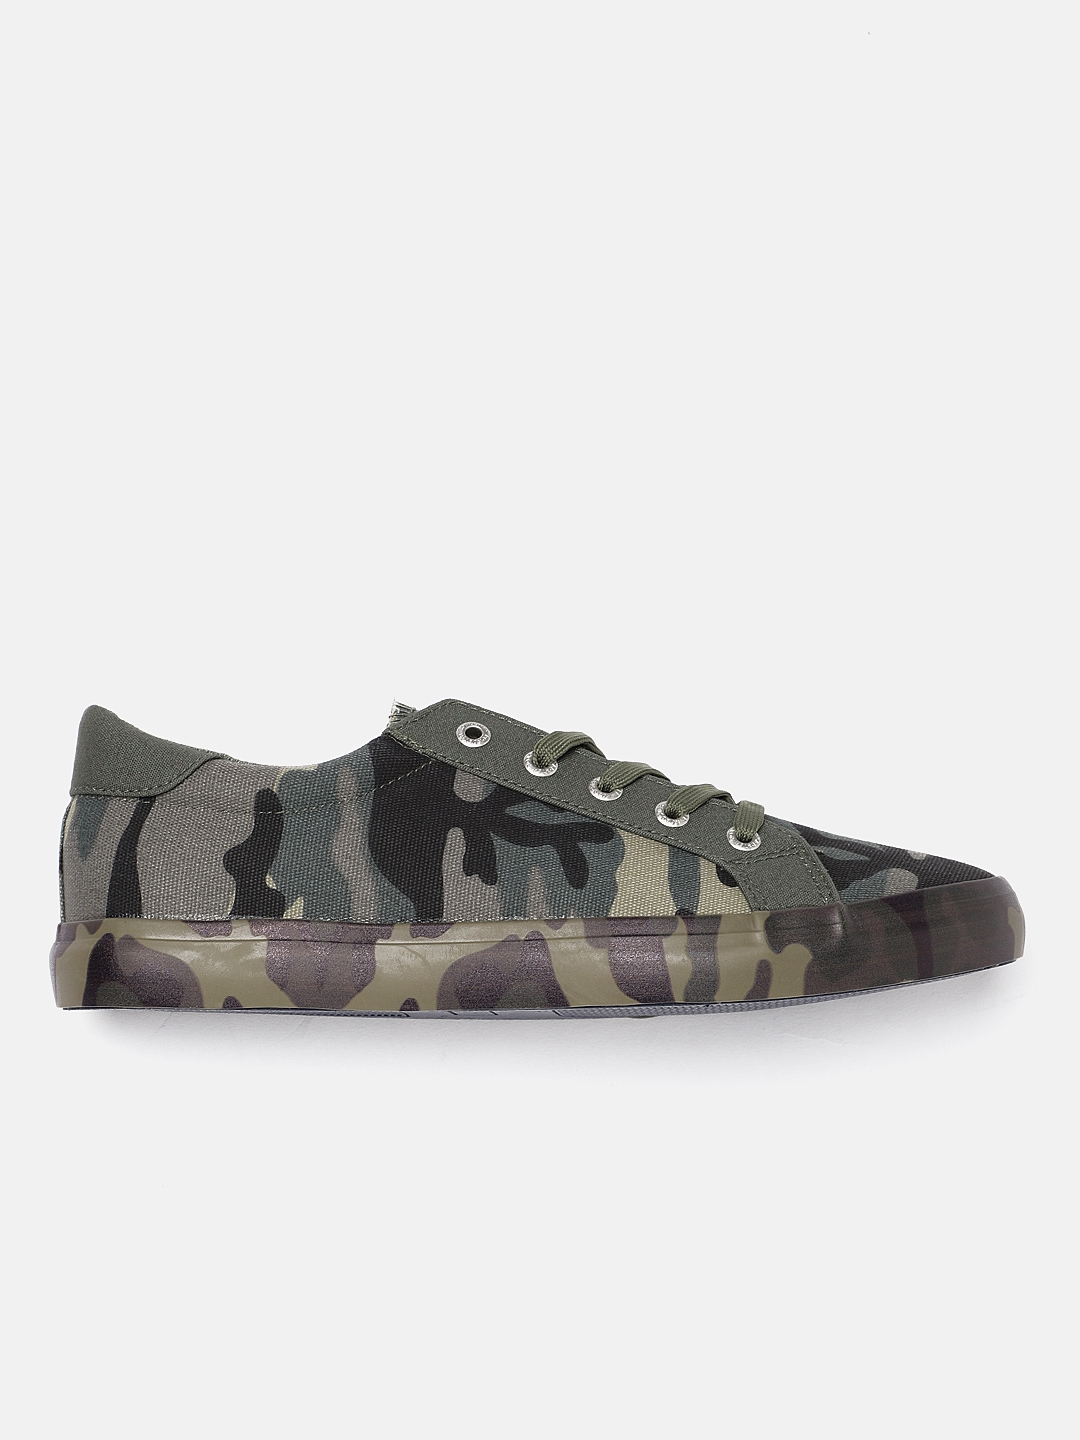 ec9bb7e6439c4 Roadster Men Green & Khaki Camouflage Print Sneakers